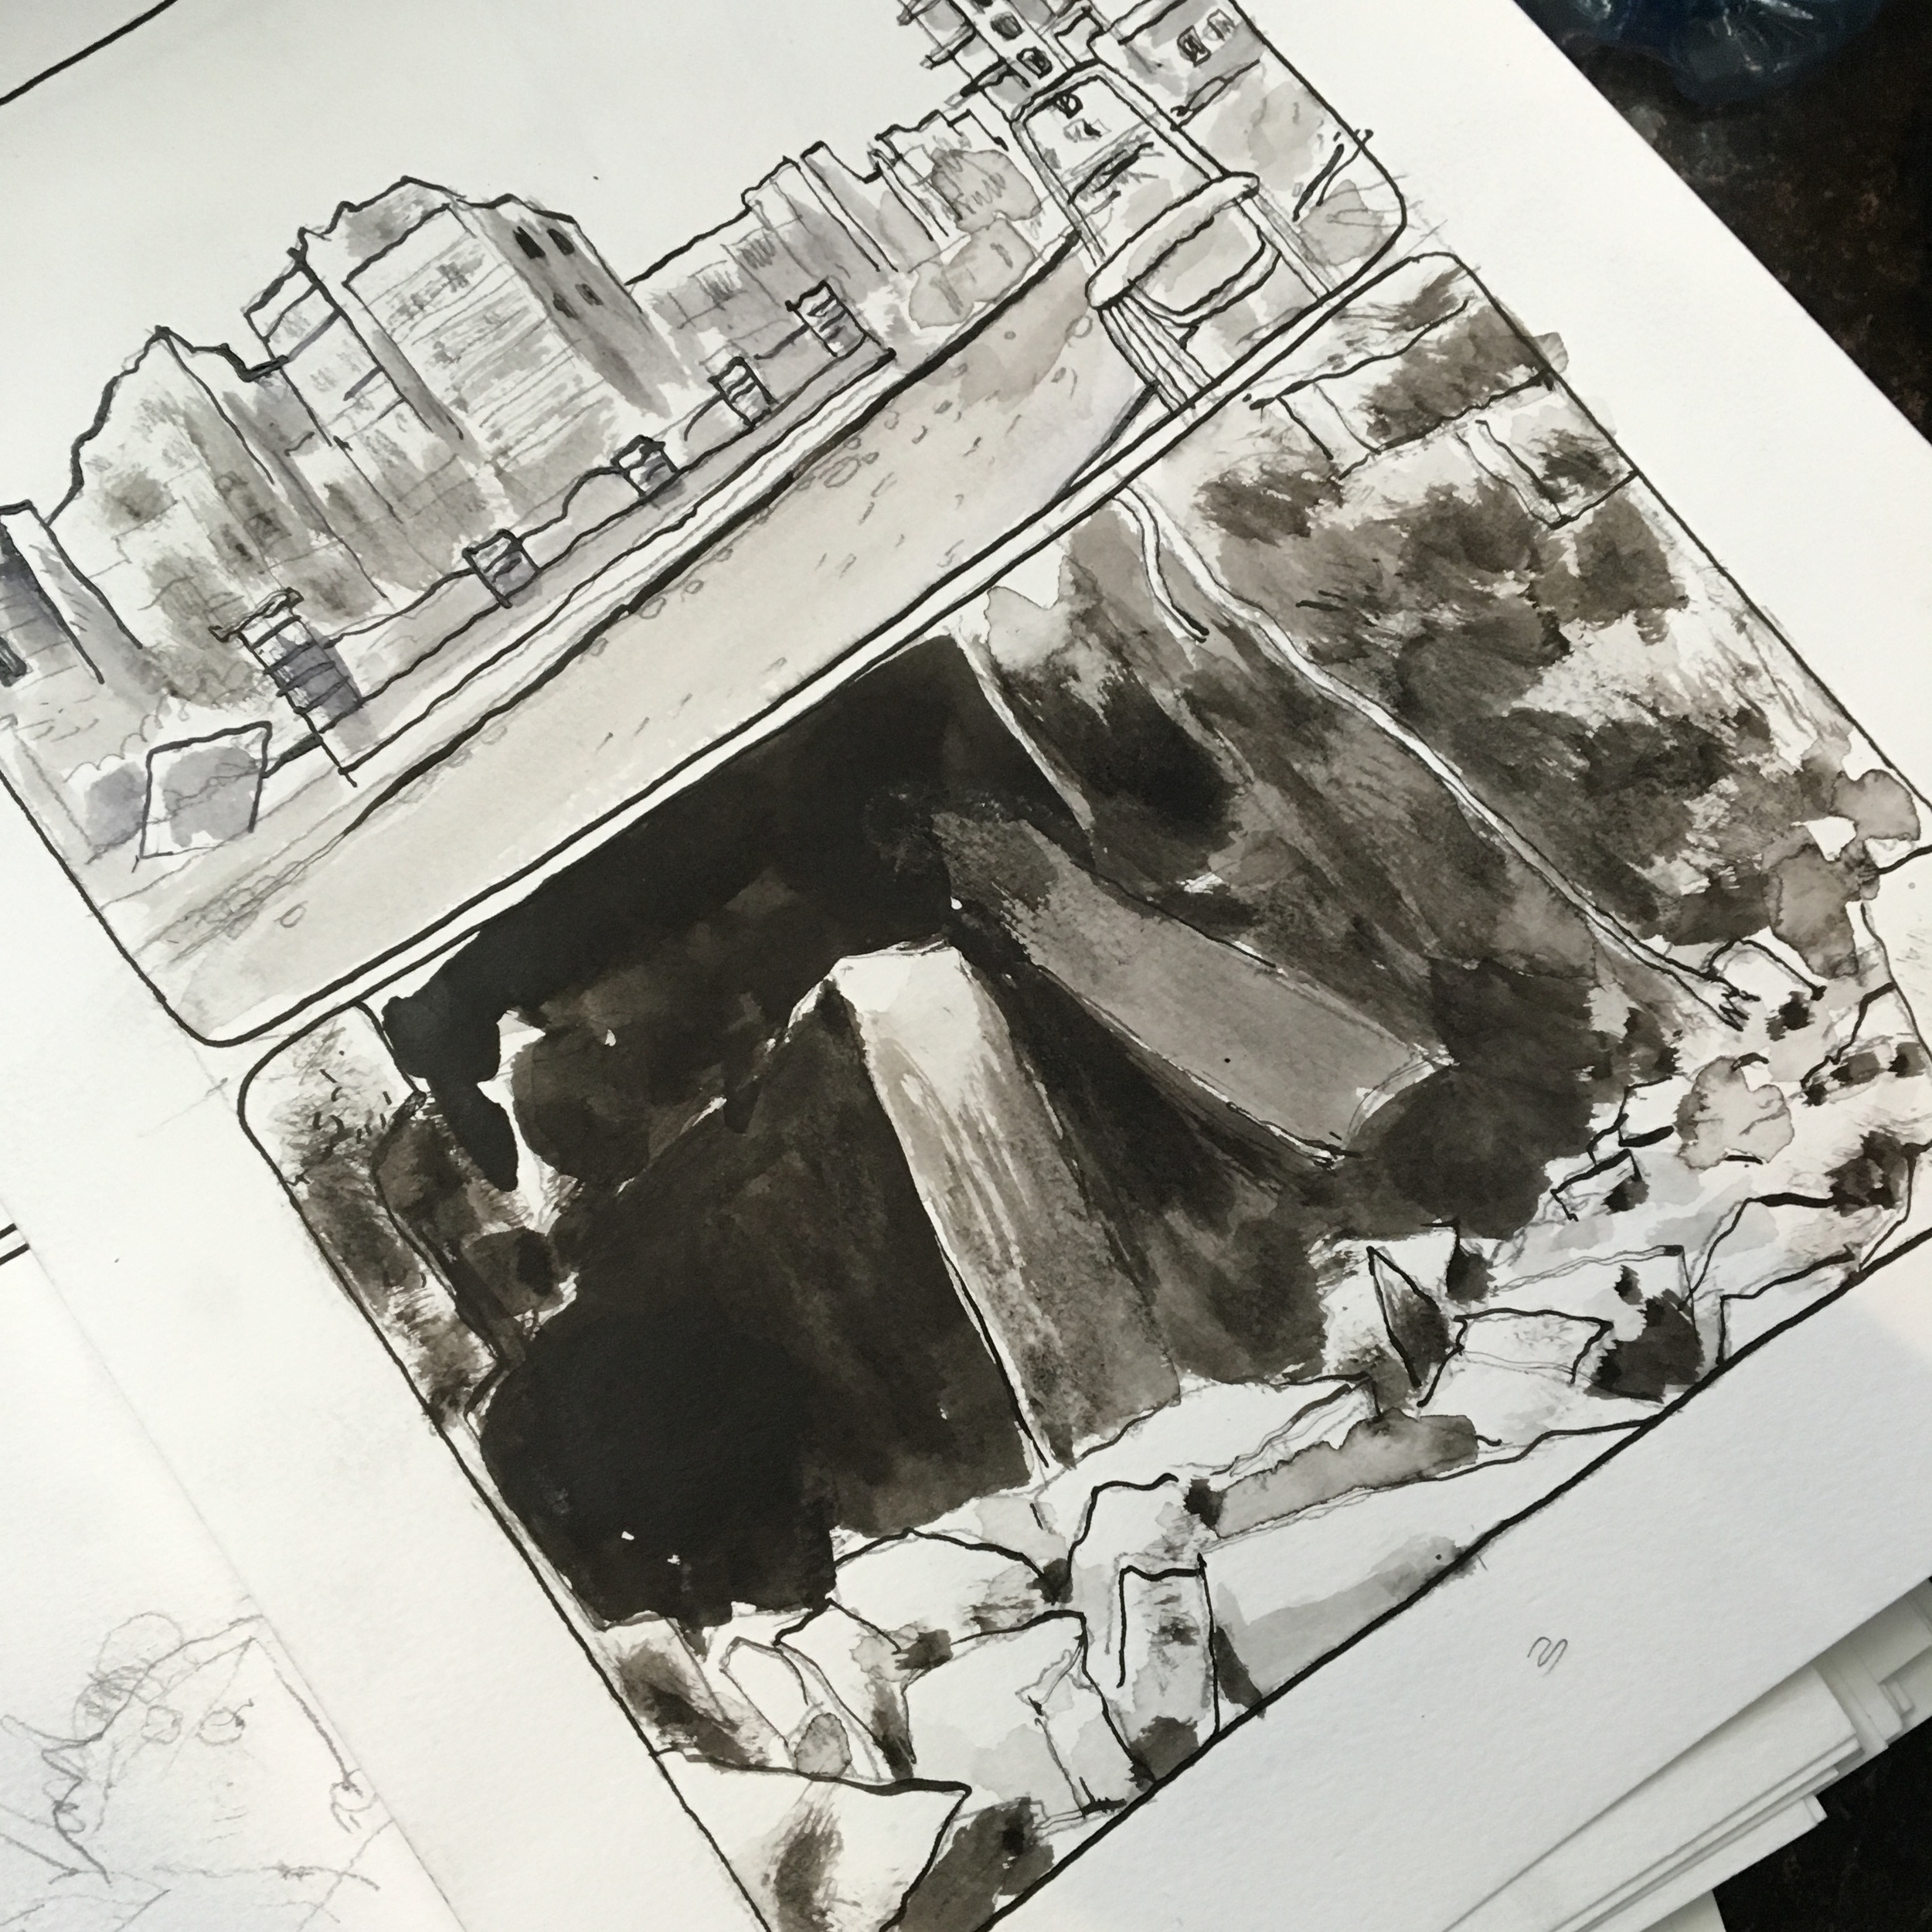 Drawing ruins obviously takes too much time for a 24 hour project.